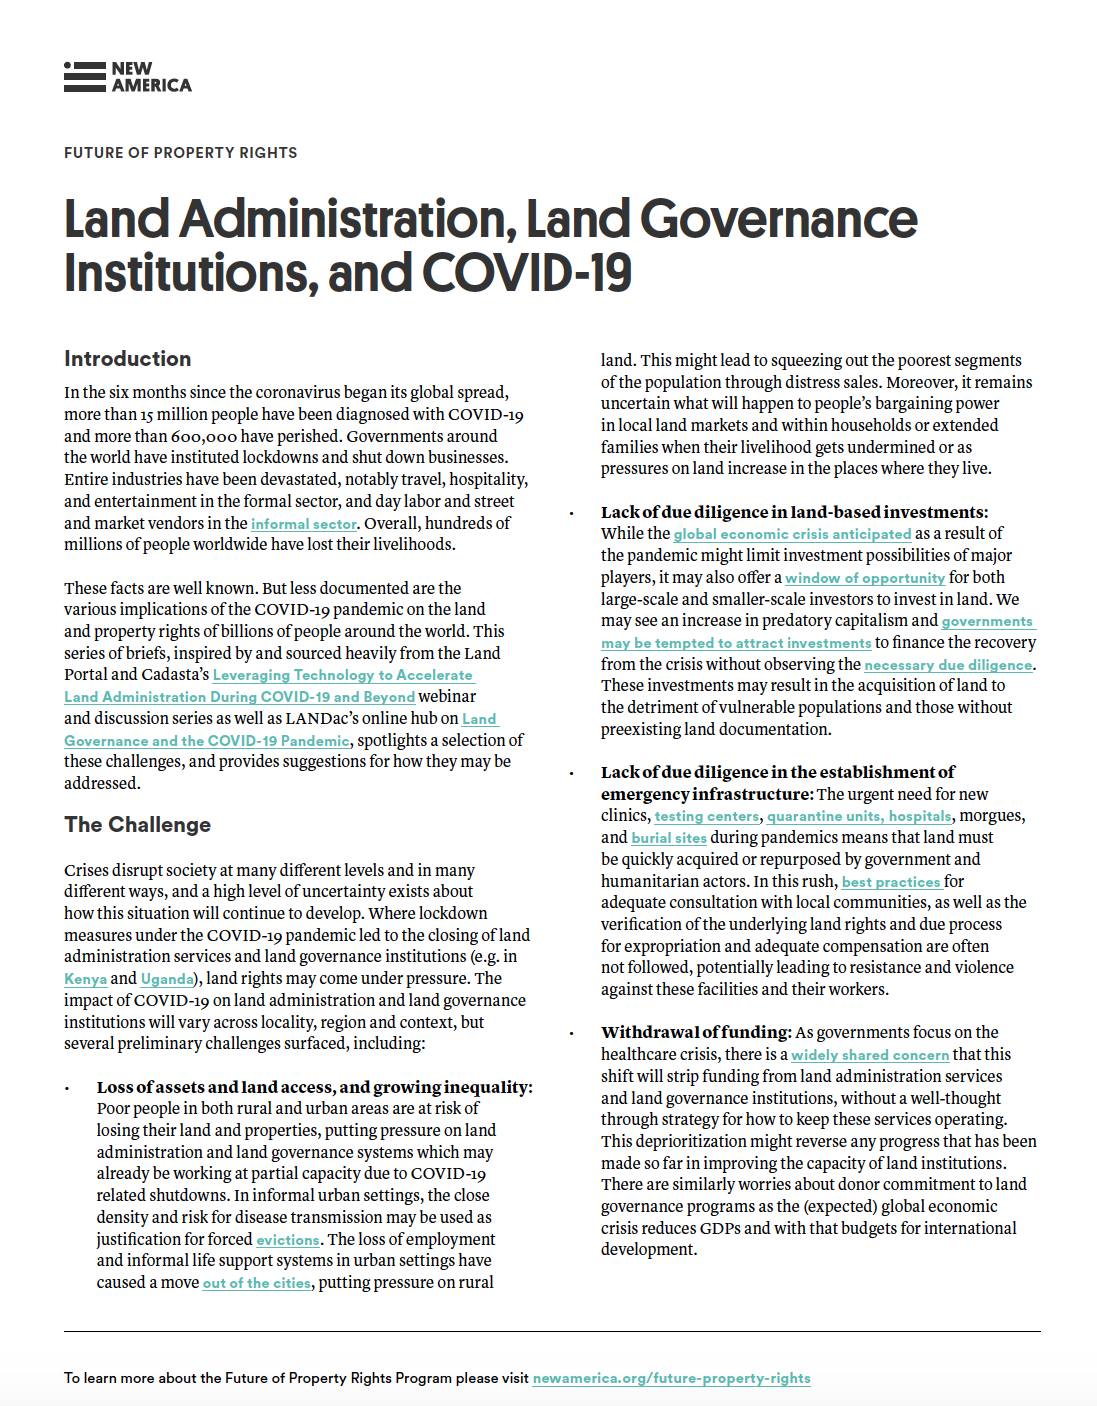 Land Administration, Land Governance Institutions, and COVID-19